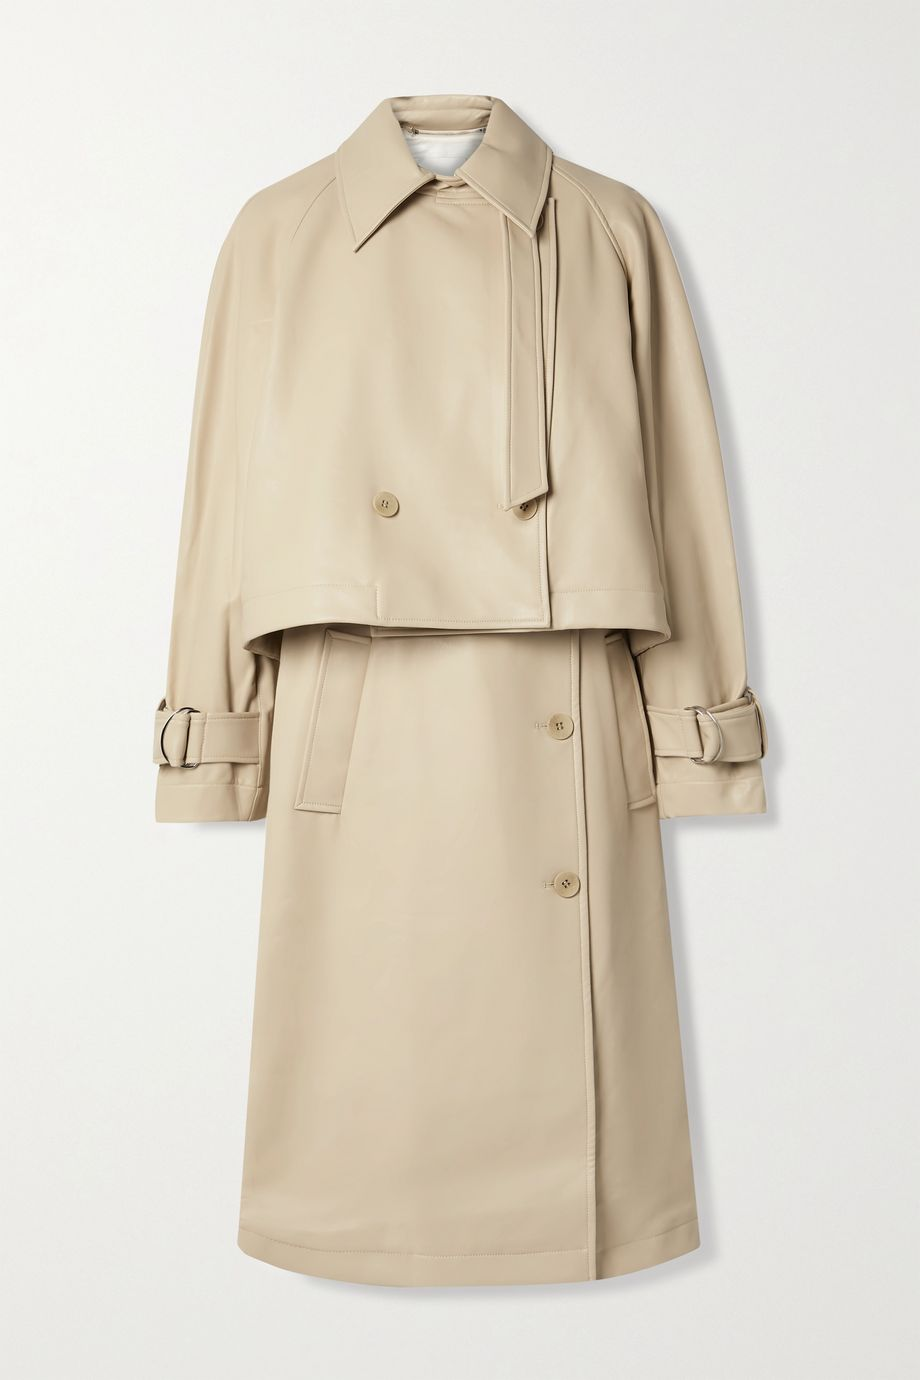 Tibi Convertible vegan leather trench coat